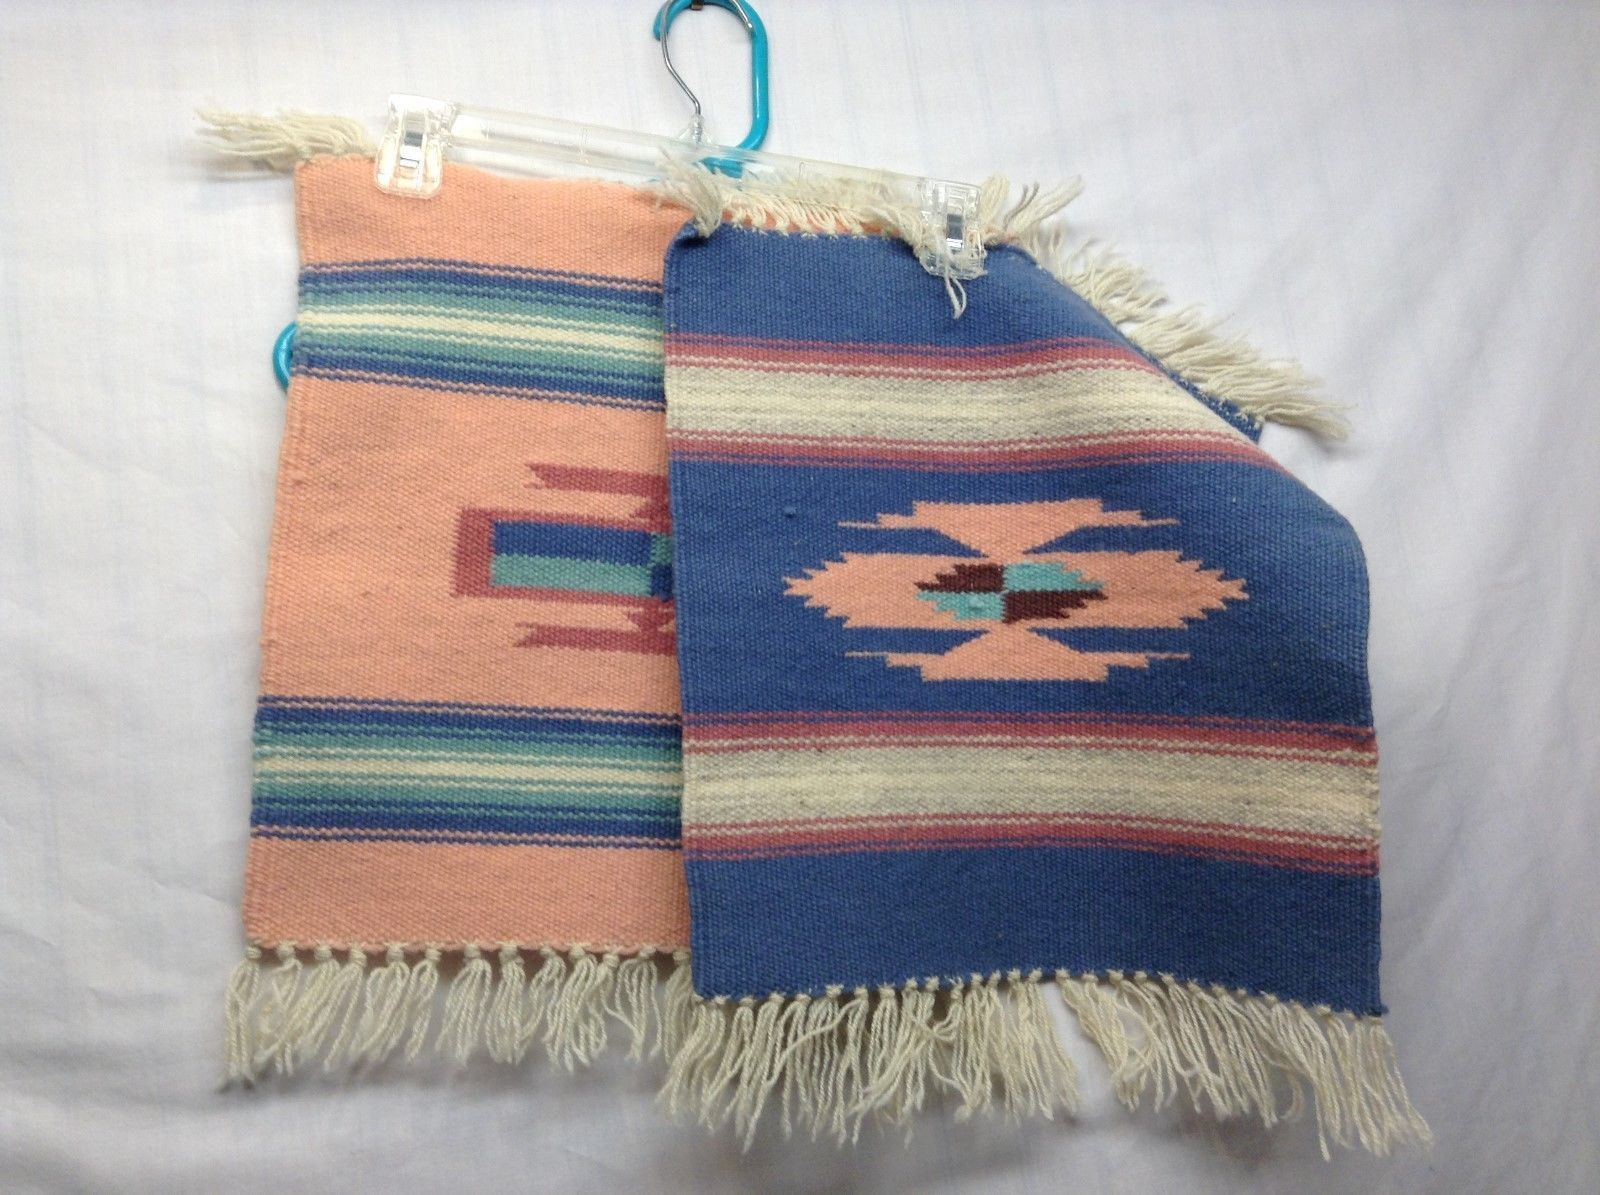 Arizonan Native Rugs/Tablemat in Classic Earth Tones w Fringed Edge Set of 2